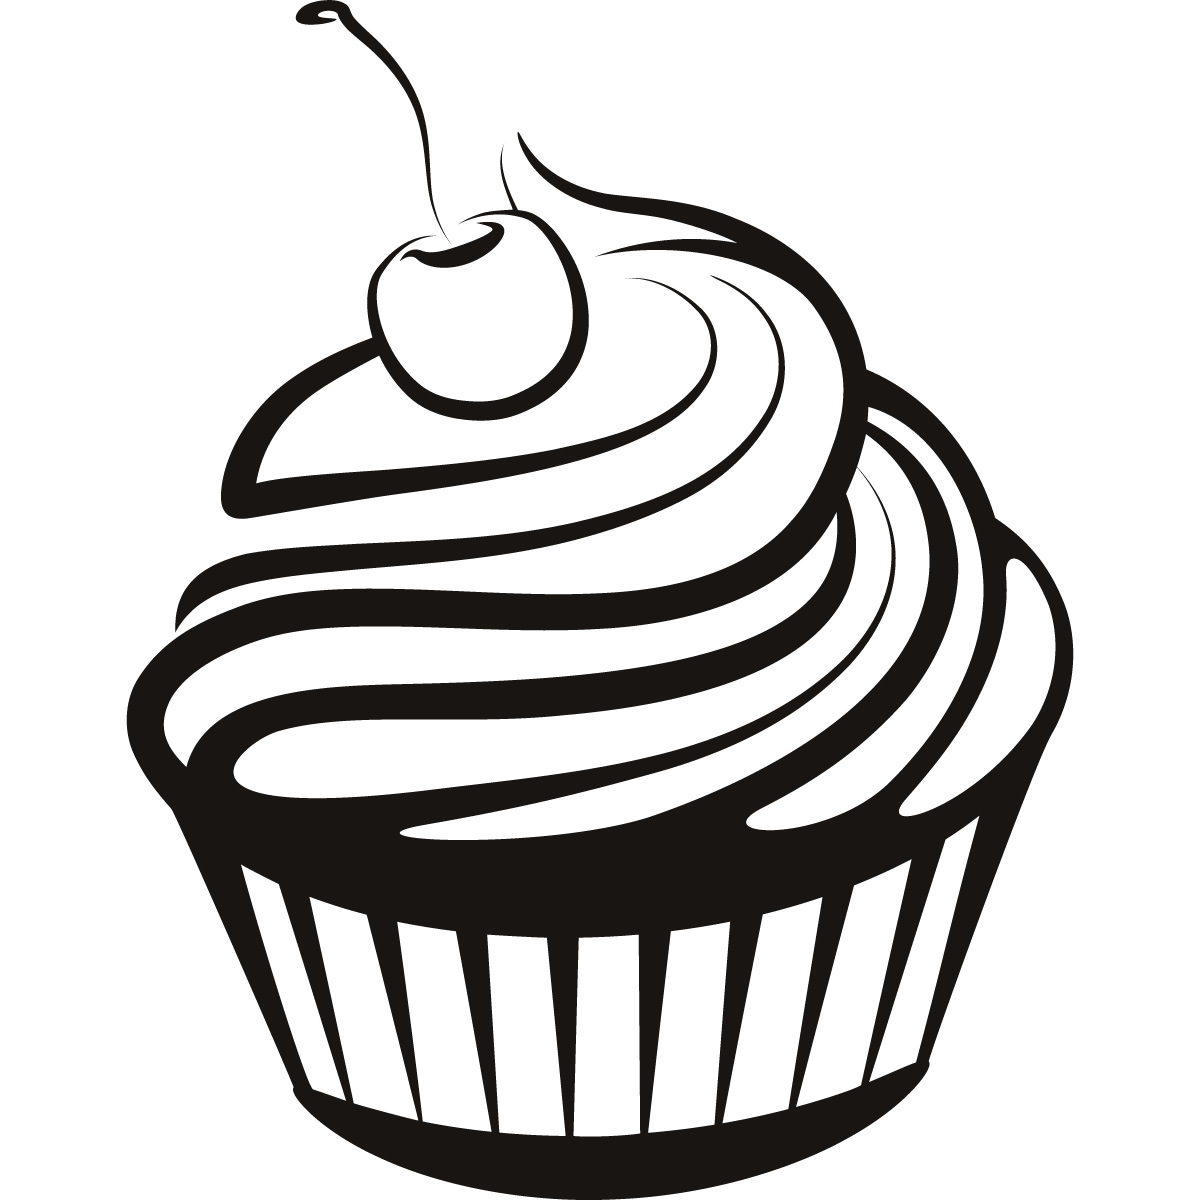 1200x1200 Black And White Cupcake Drawing Cupcake Clipart Black And White